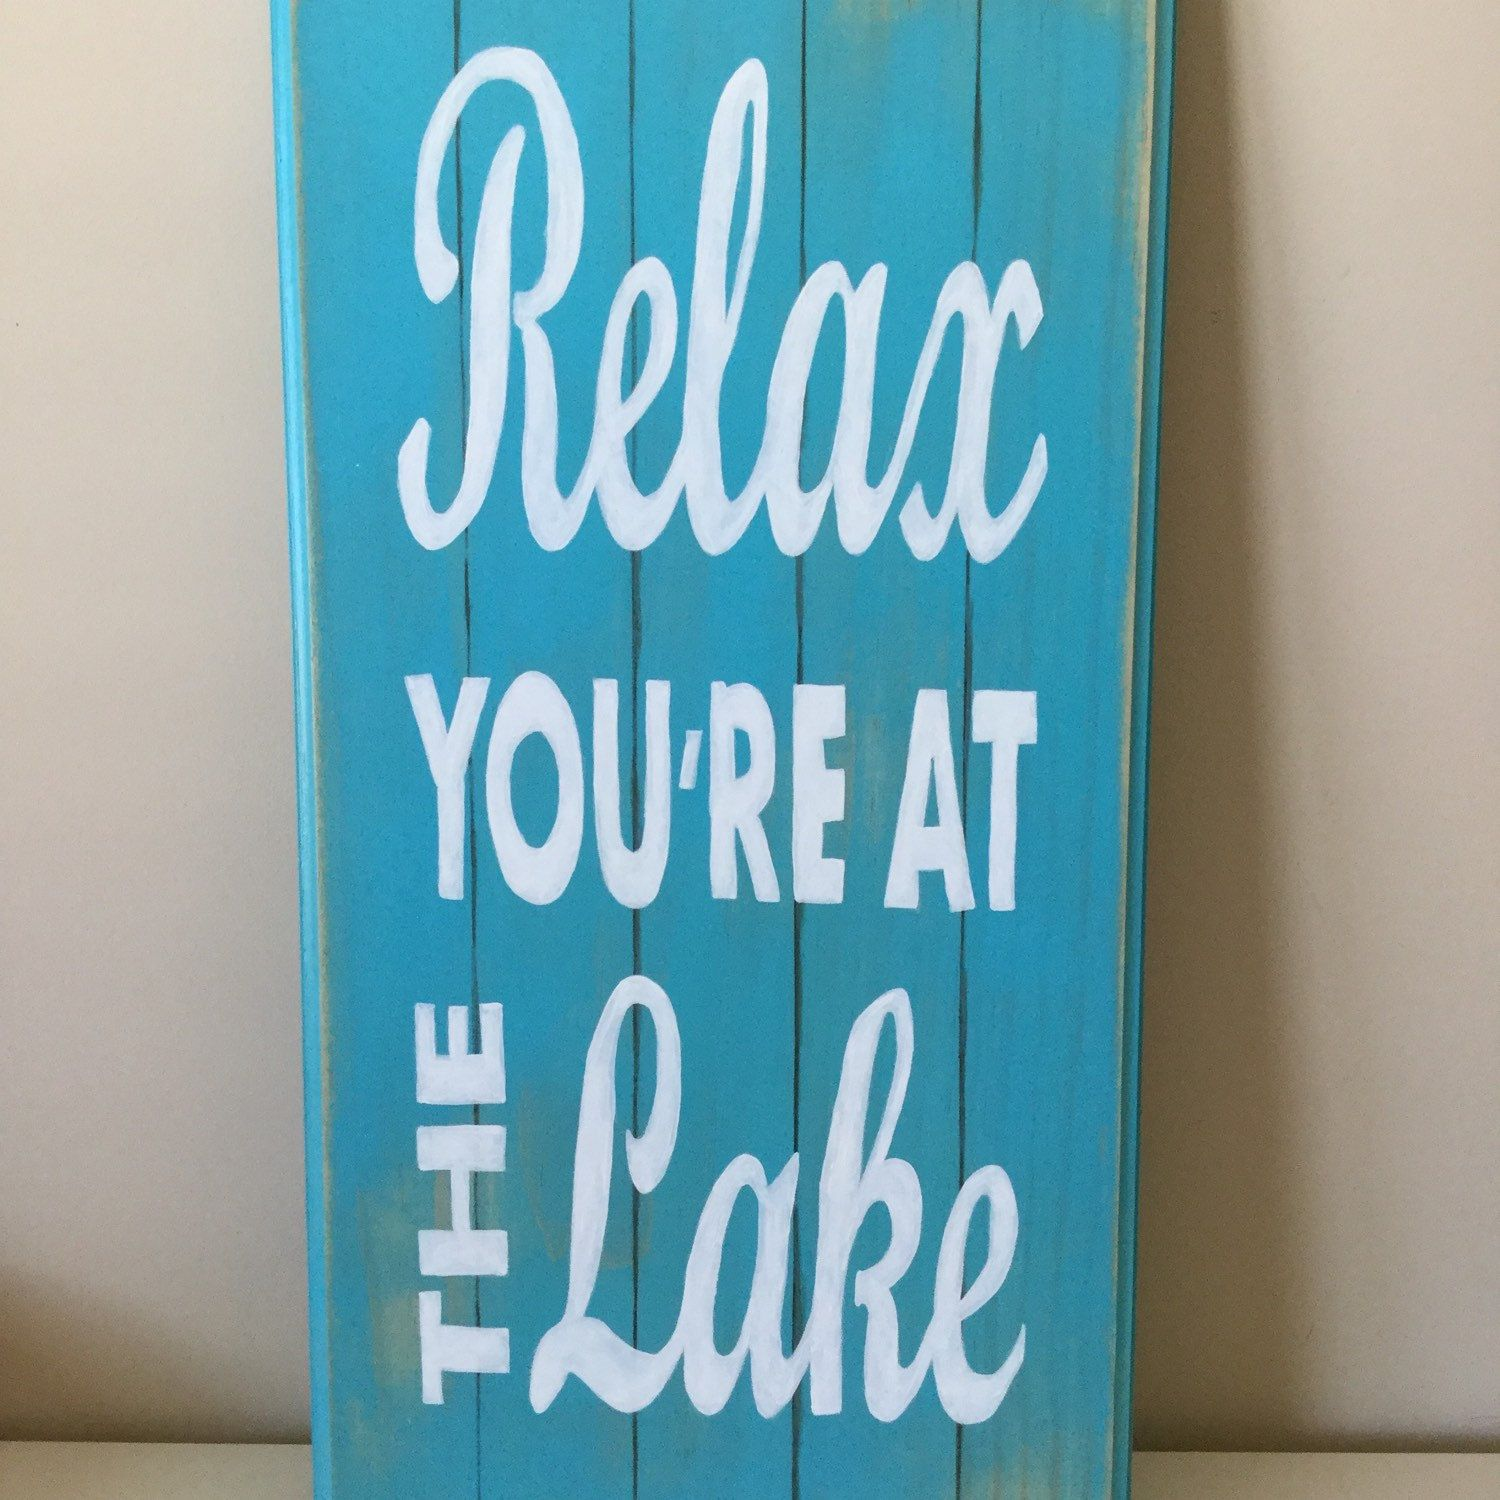 For all those lake lovers out there! | AnnaBellesCharm | Pinterest ...